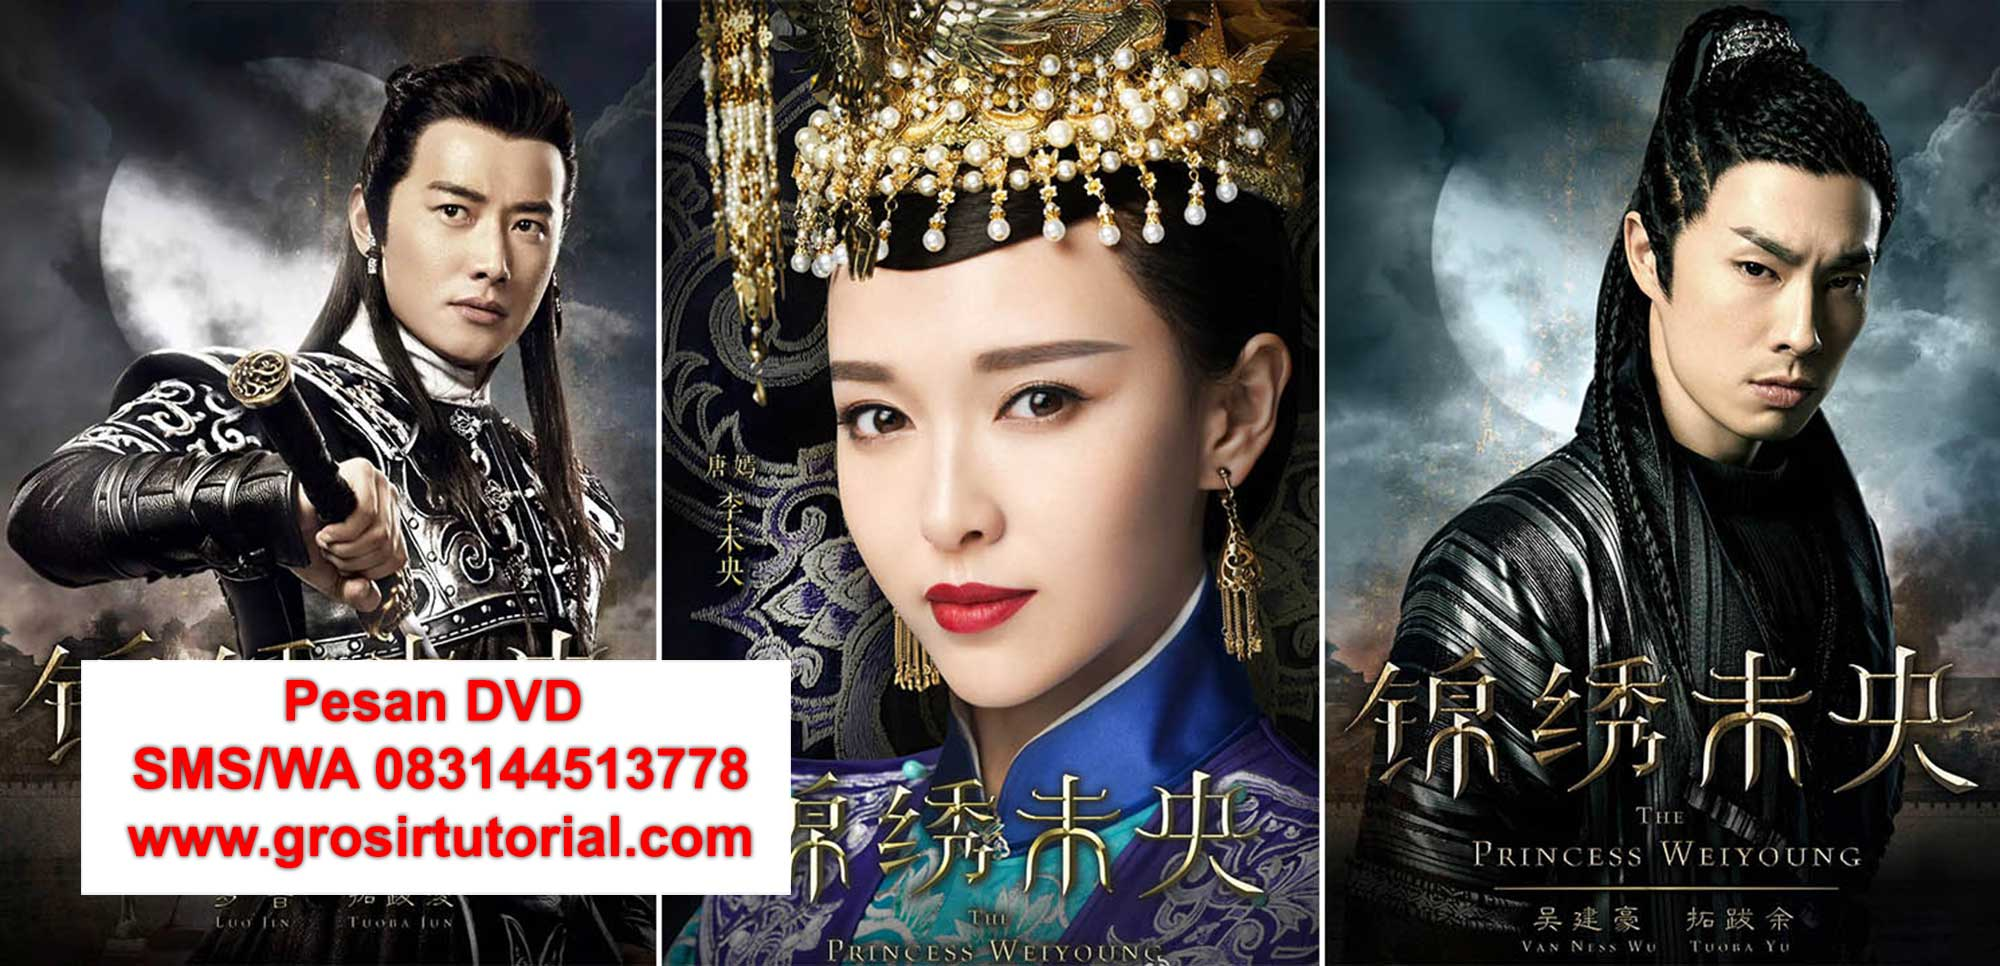 Pesan-DVD-Silat-Mandarin-The-Princess-Wei-Young